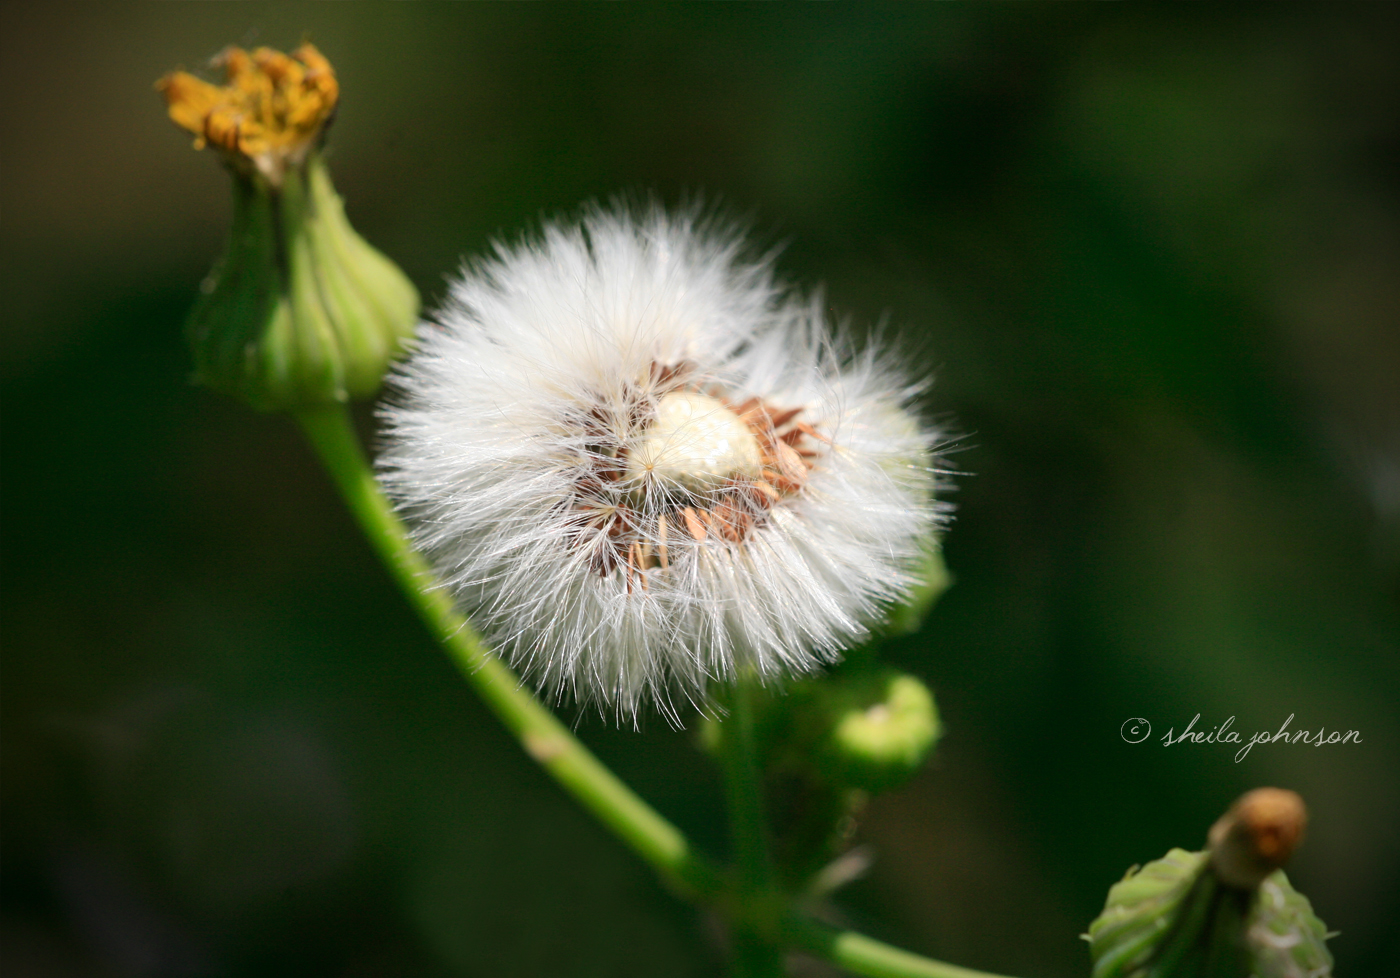 Epitome of a Make a Wish Flower Nature s Folio